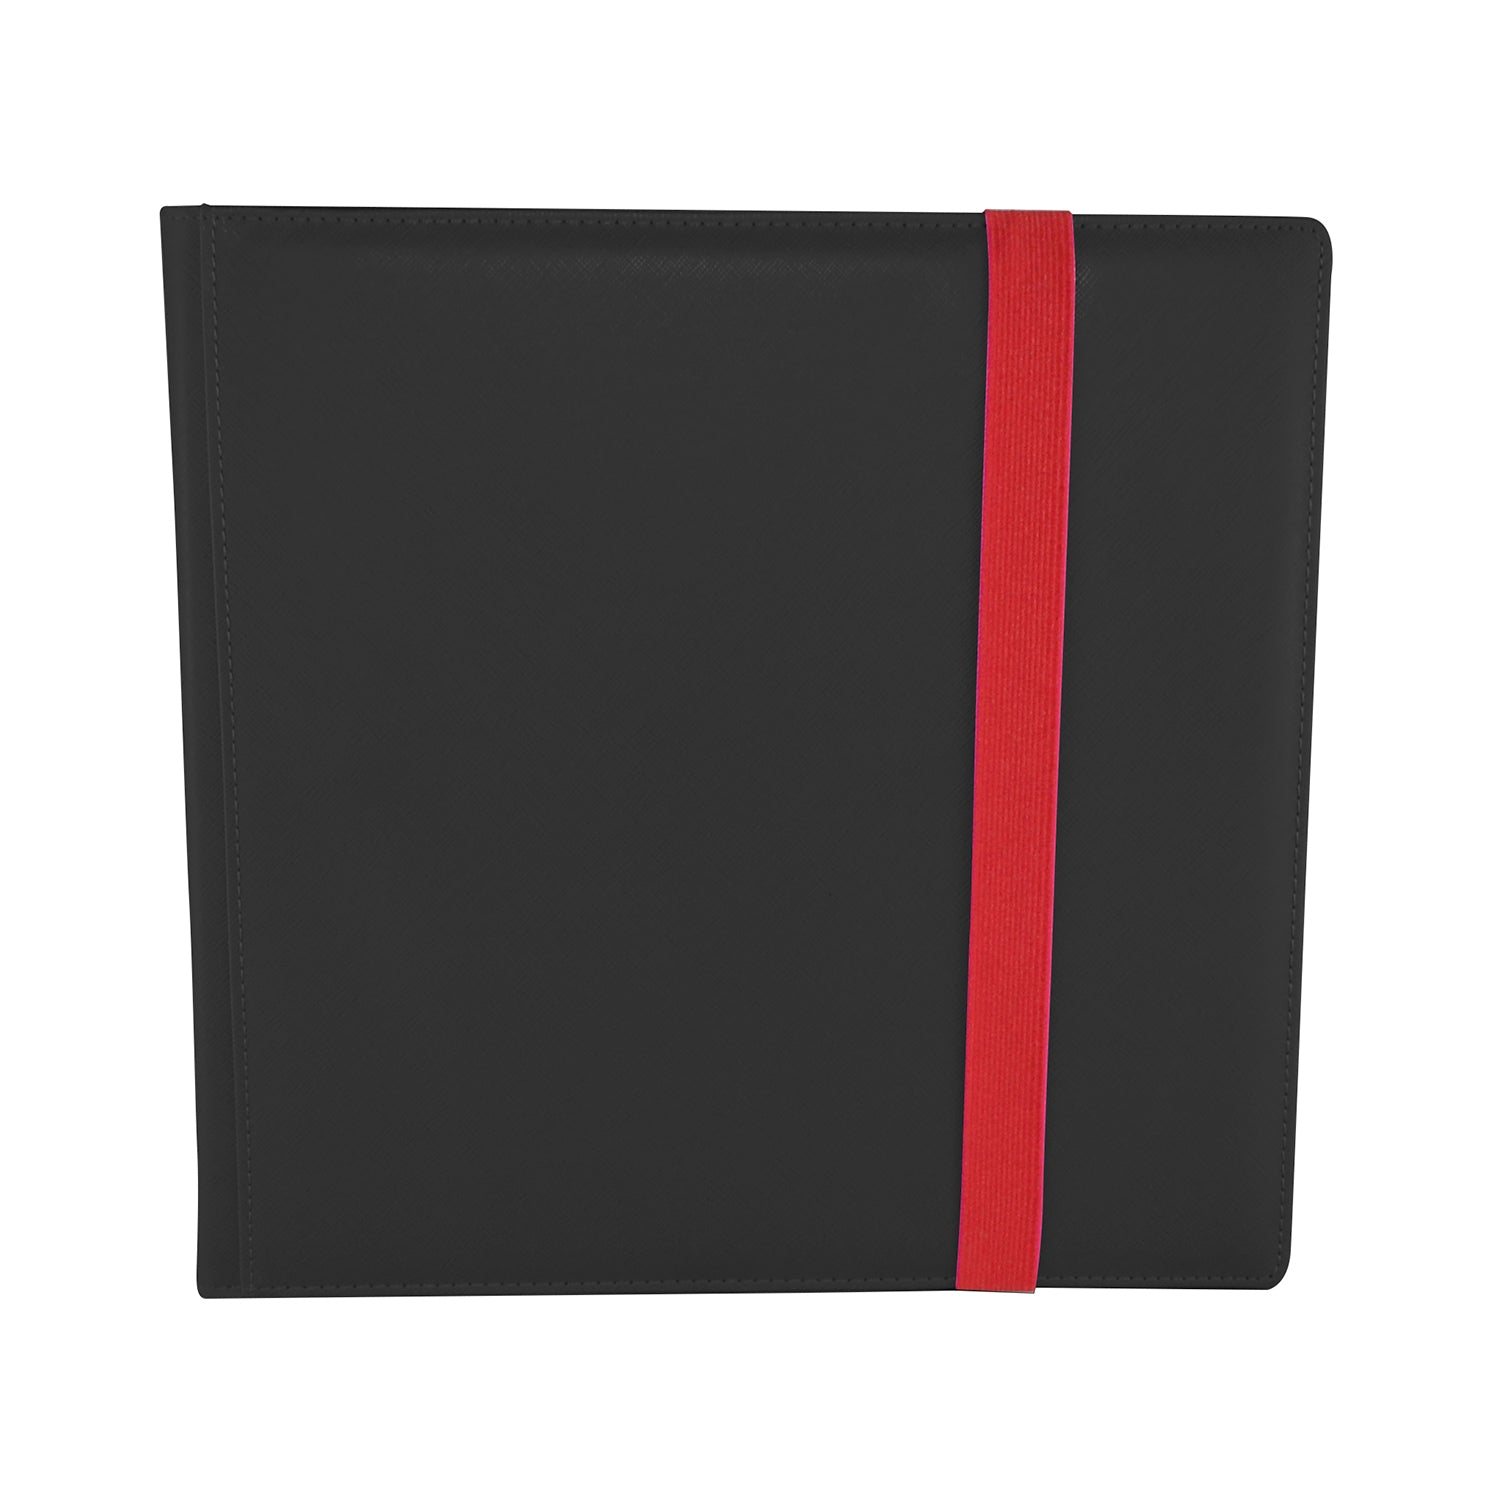 Dex Protection: The Dex Binder 12 - Black